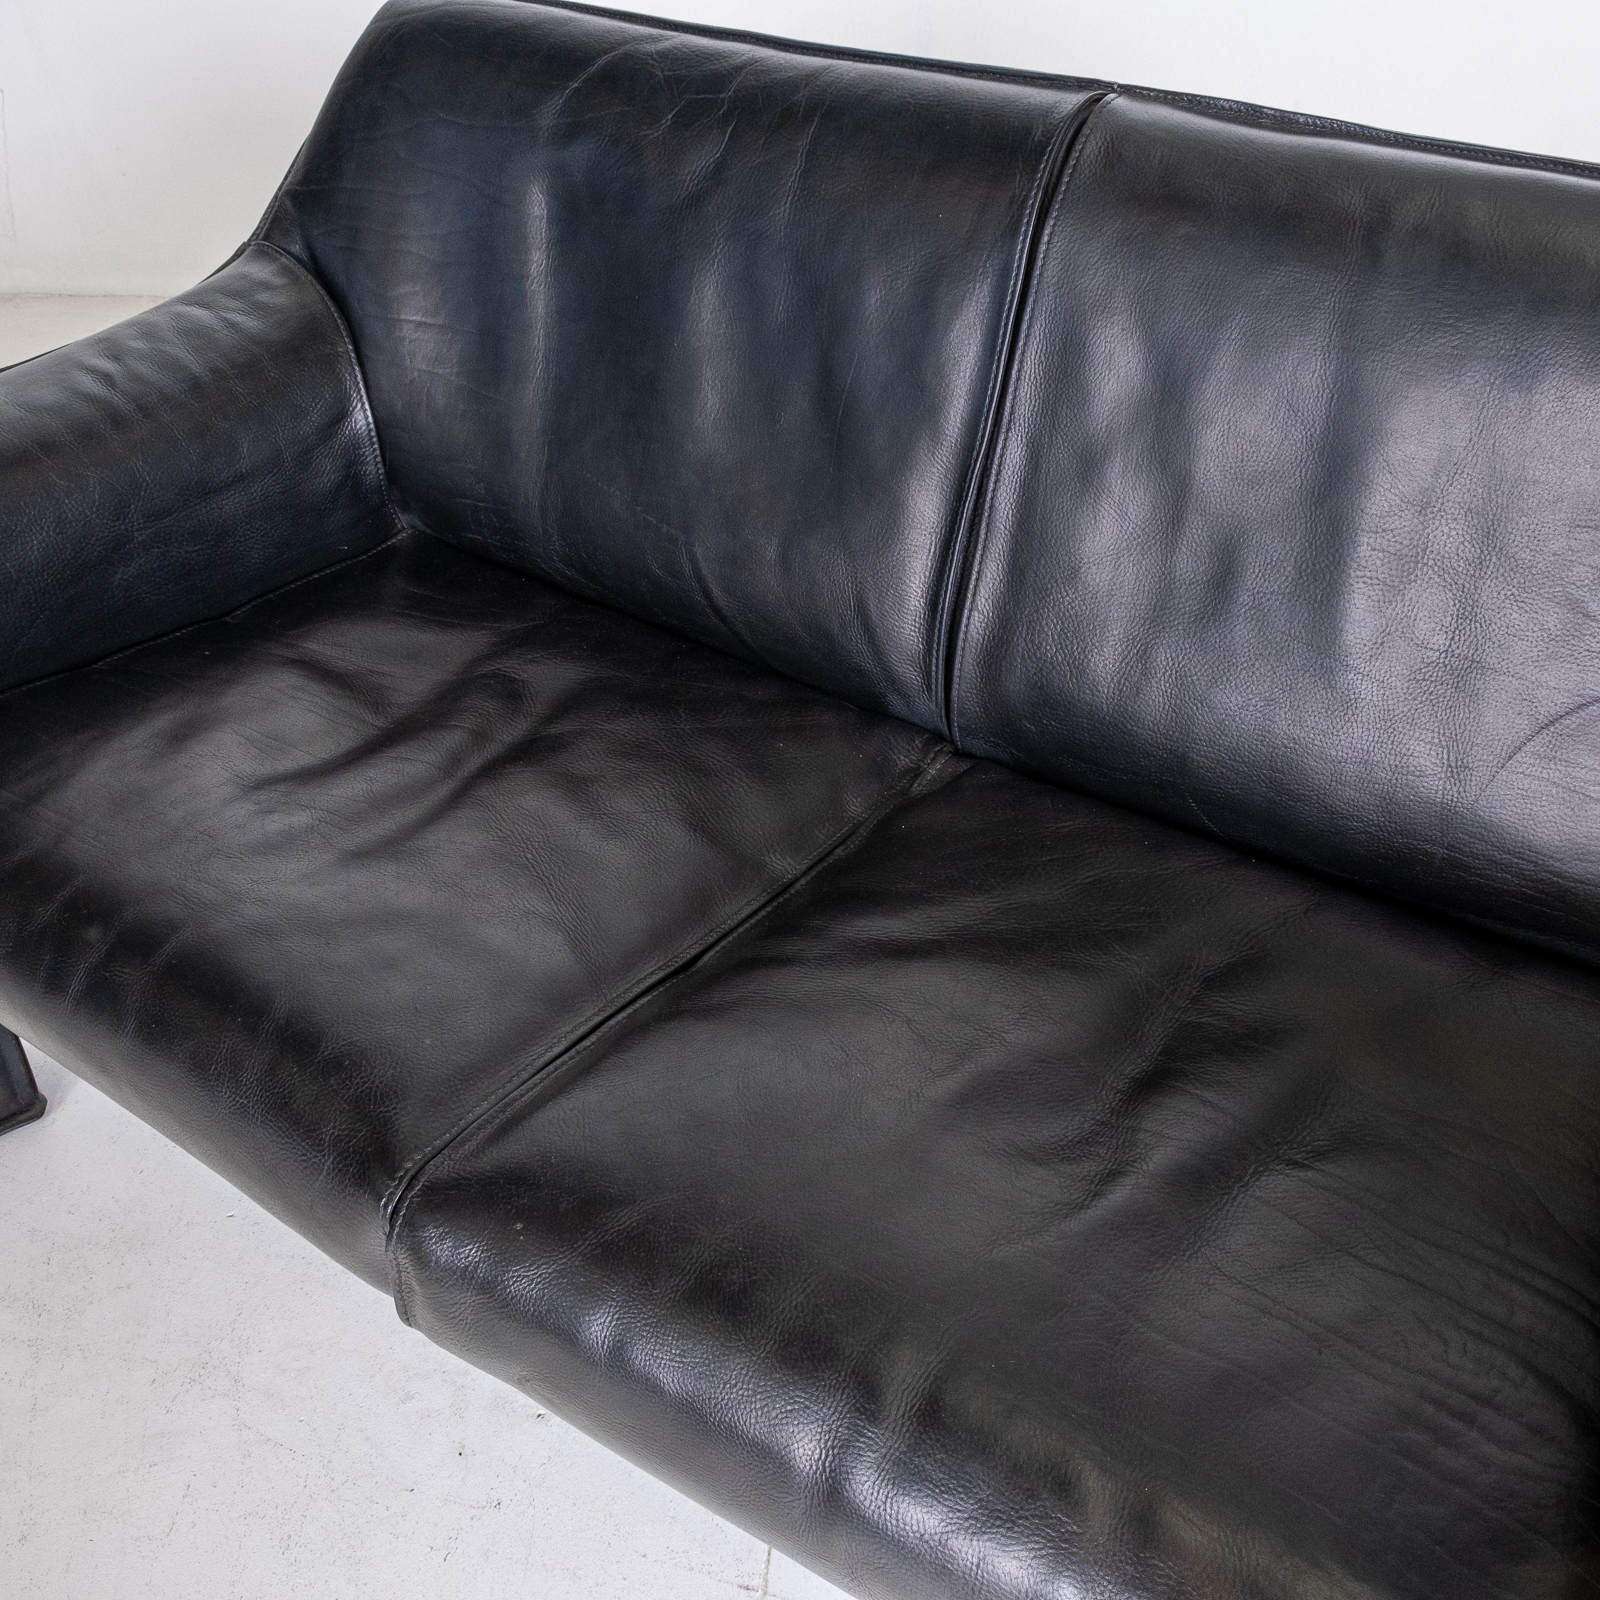 Model 415 Cab 2 Seat Sofa By Mario Bellini For Cassina In Black Leather, 1987, Italy 00009